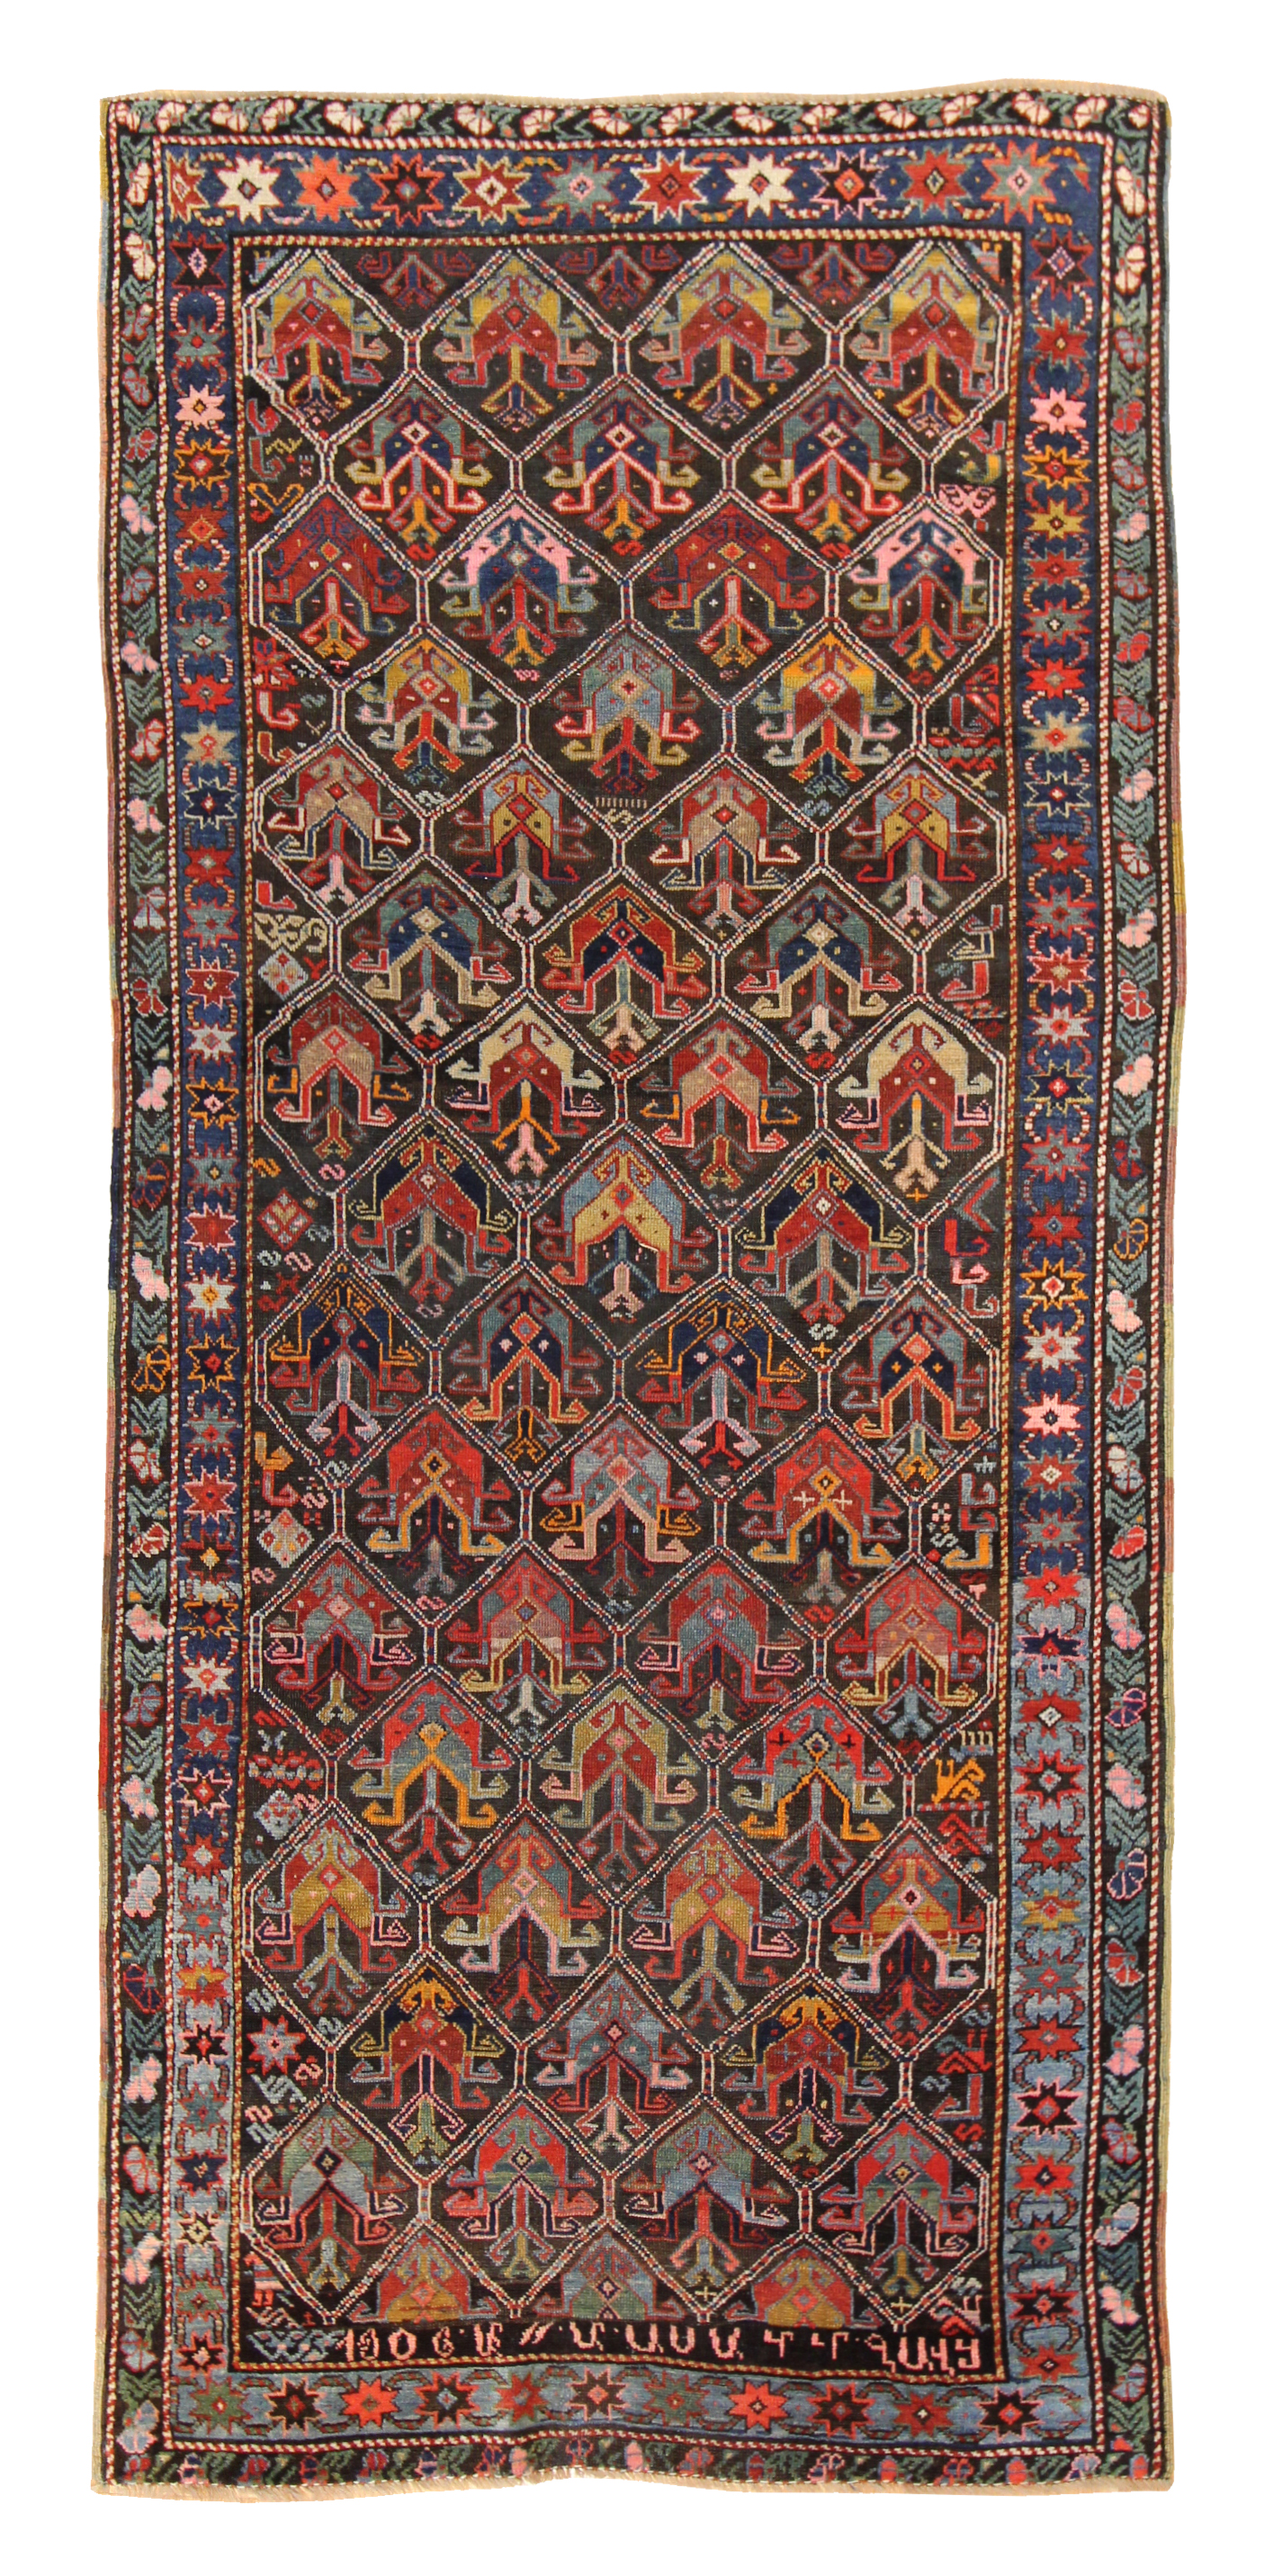 524 Tulip Karabagh, dated 1906, 4'x9'